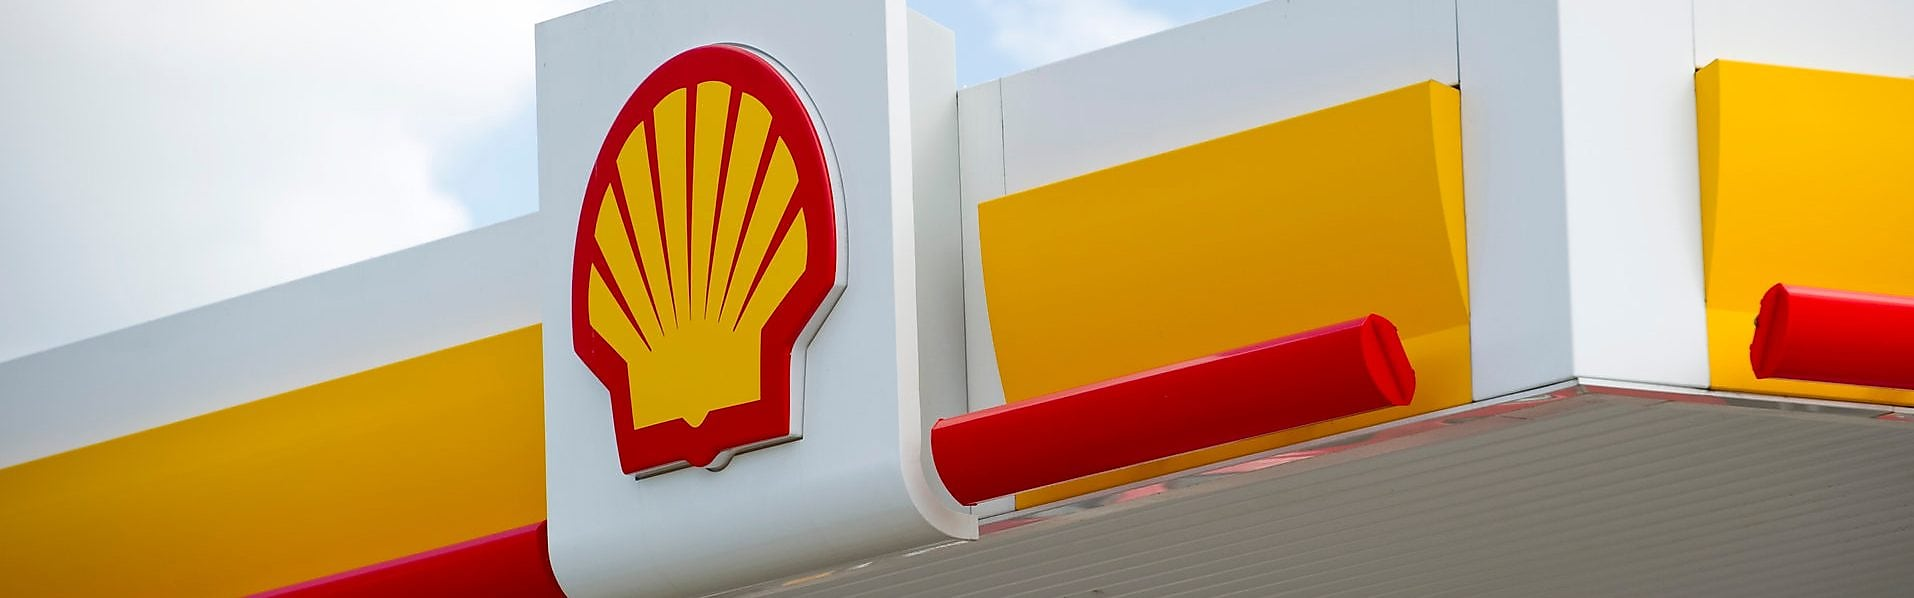 Shell service station and Shell logo